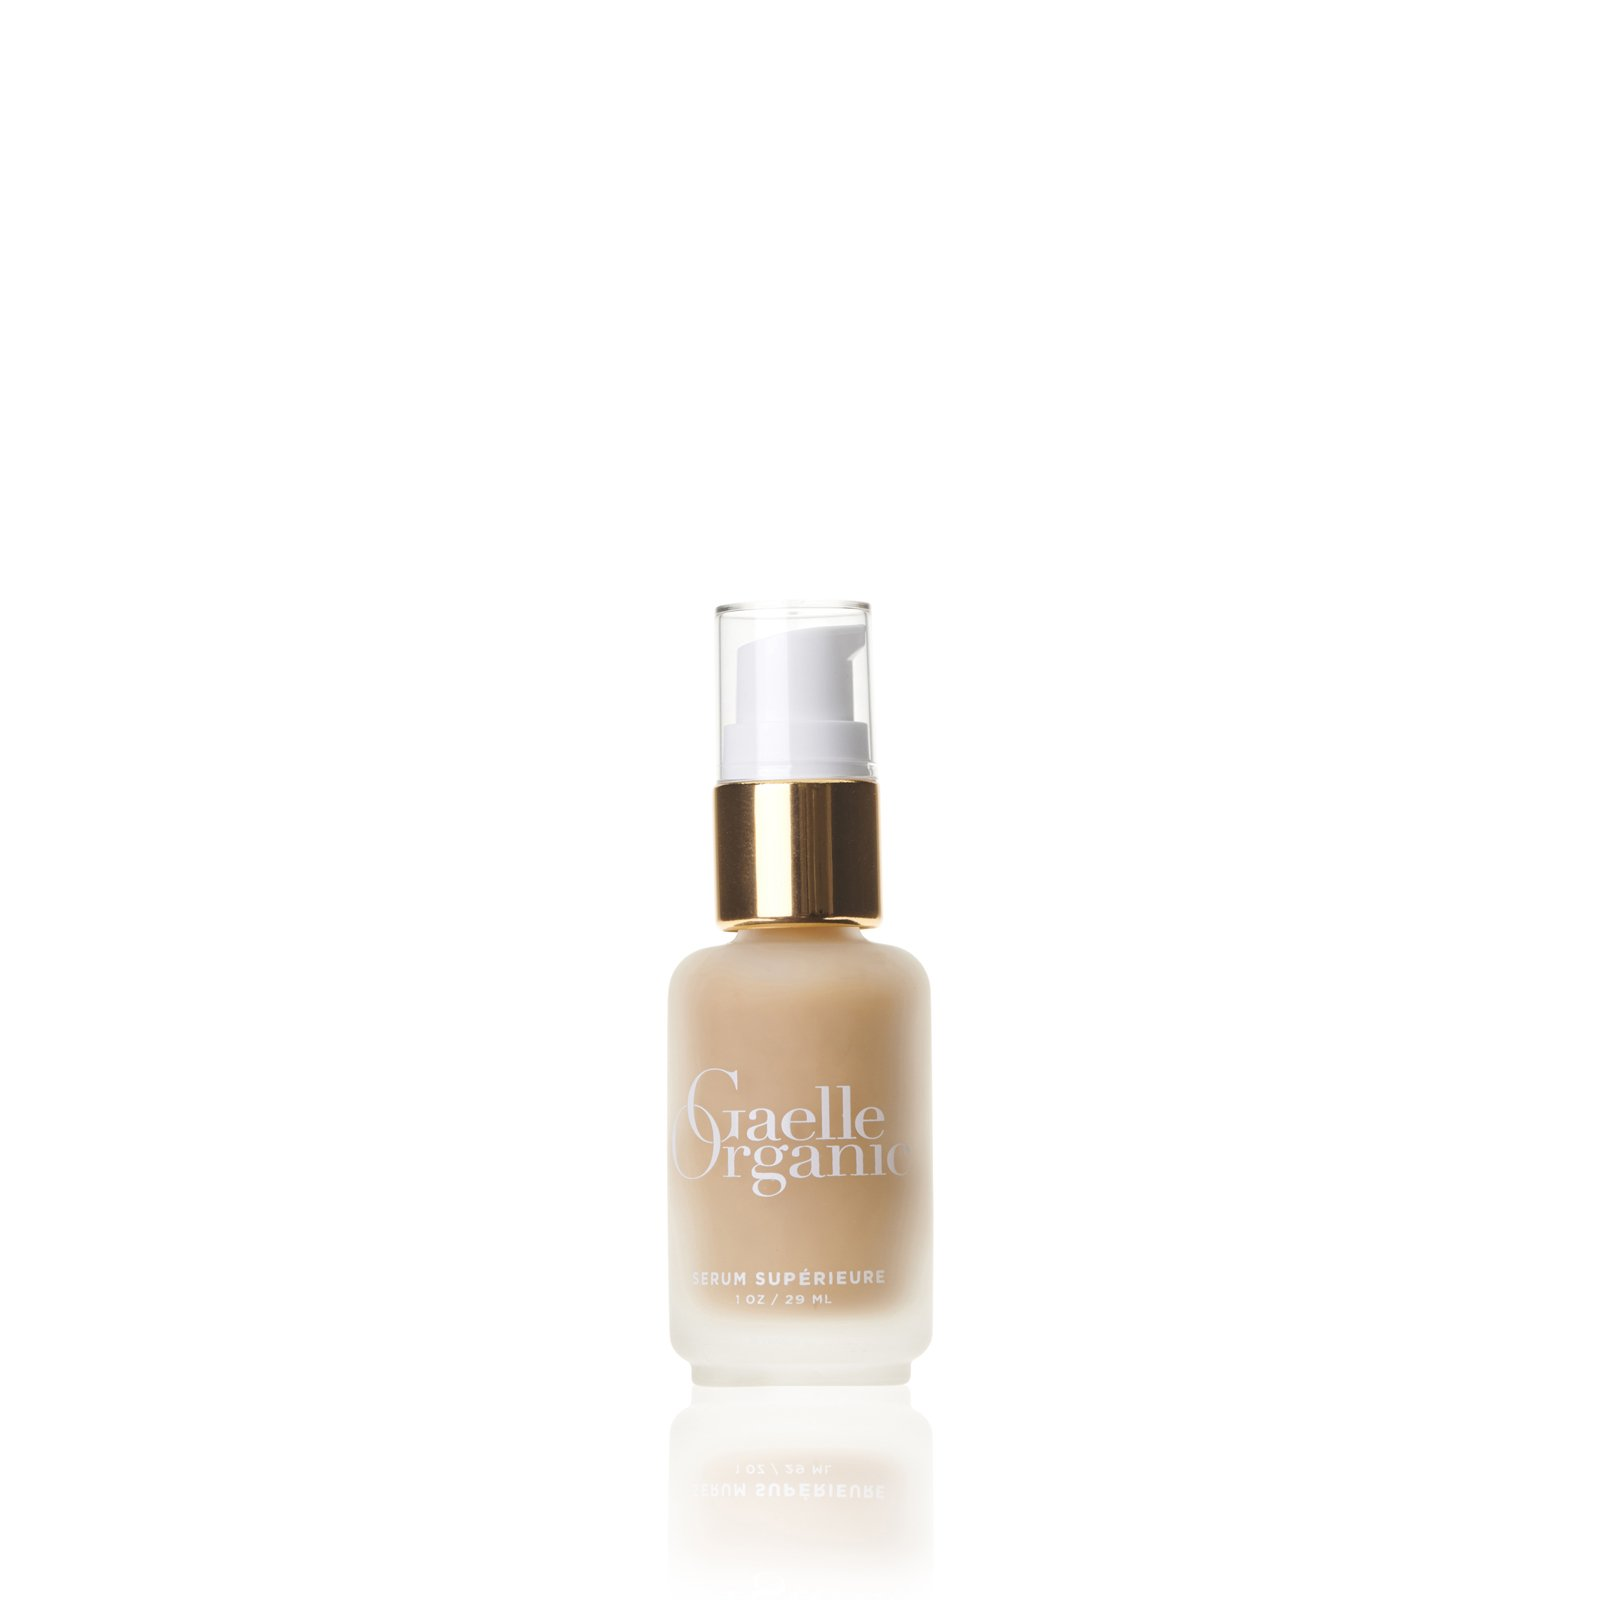 Serum Supérieure from Gaelle Organic